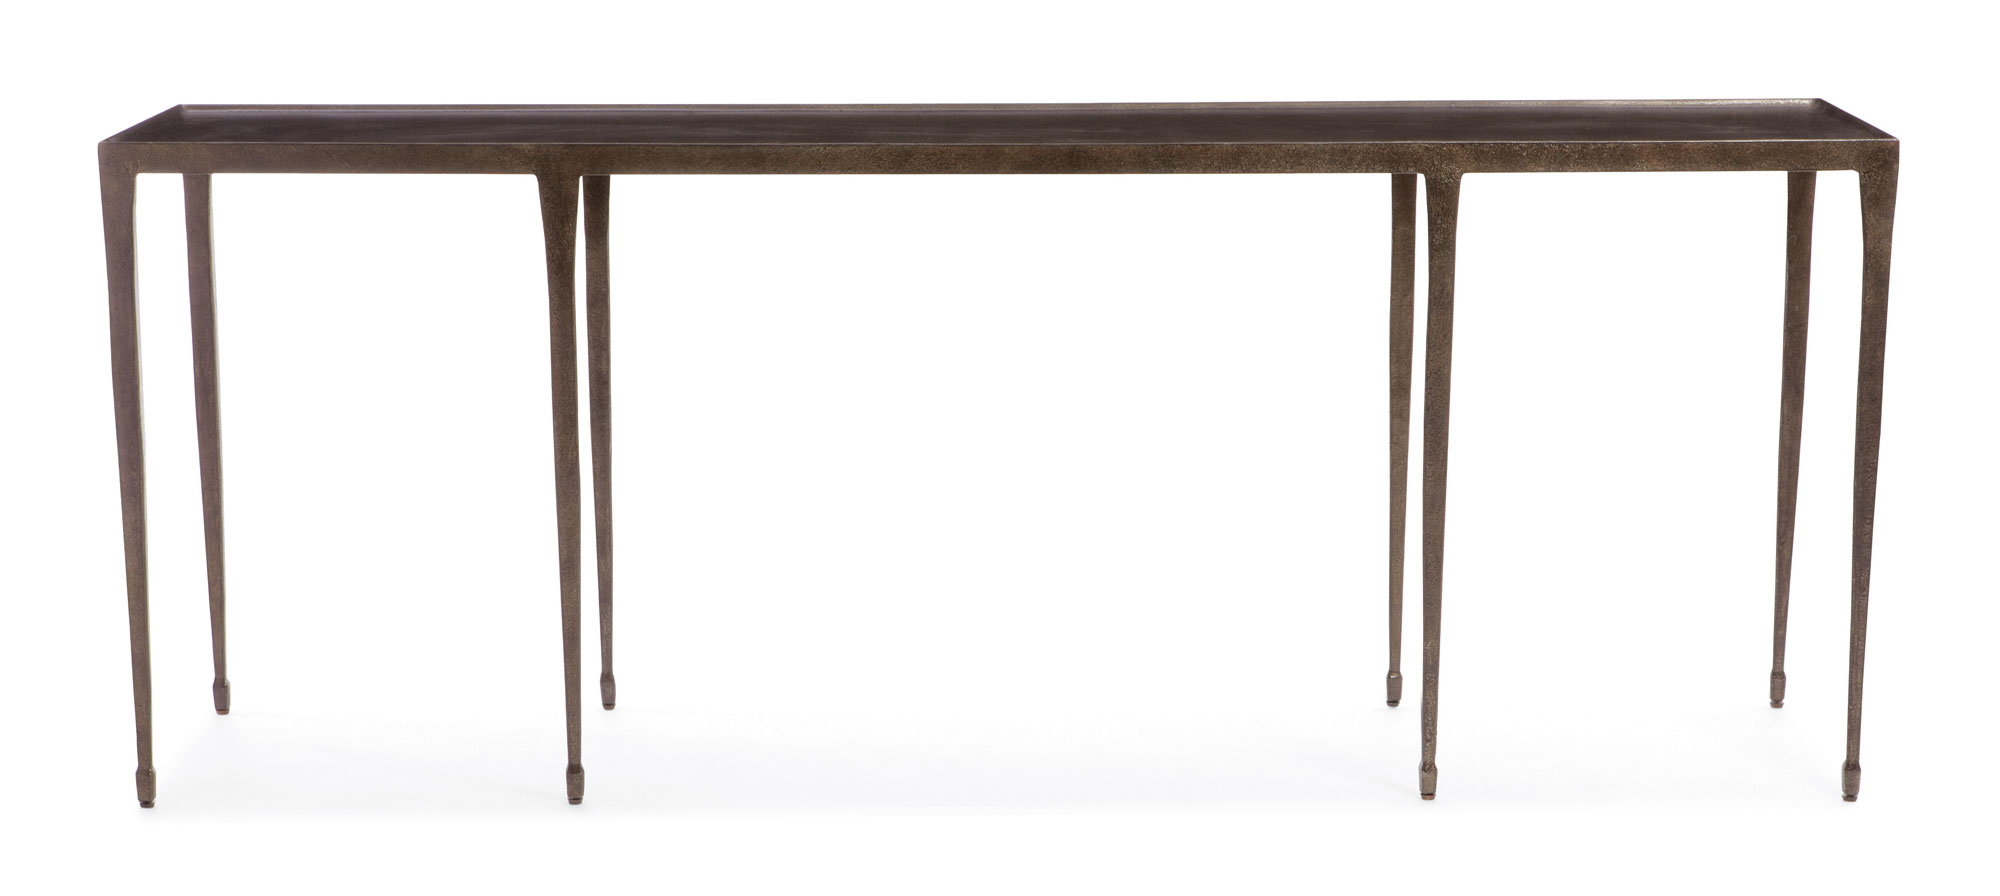 Bernhardt Console Table Halden 84 Inch Hammered Iron Distressed in Ventana Display Console Tables (Image 4 of 30)